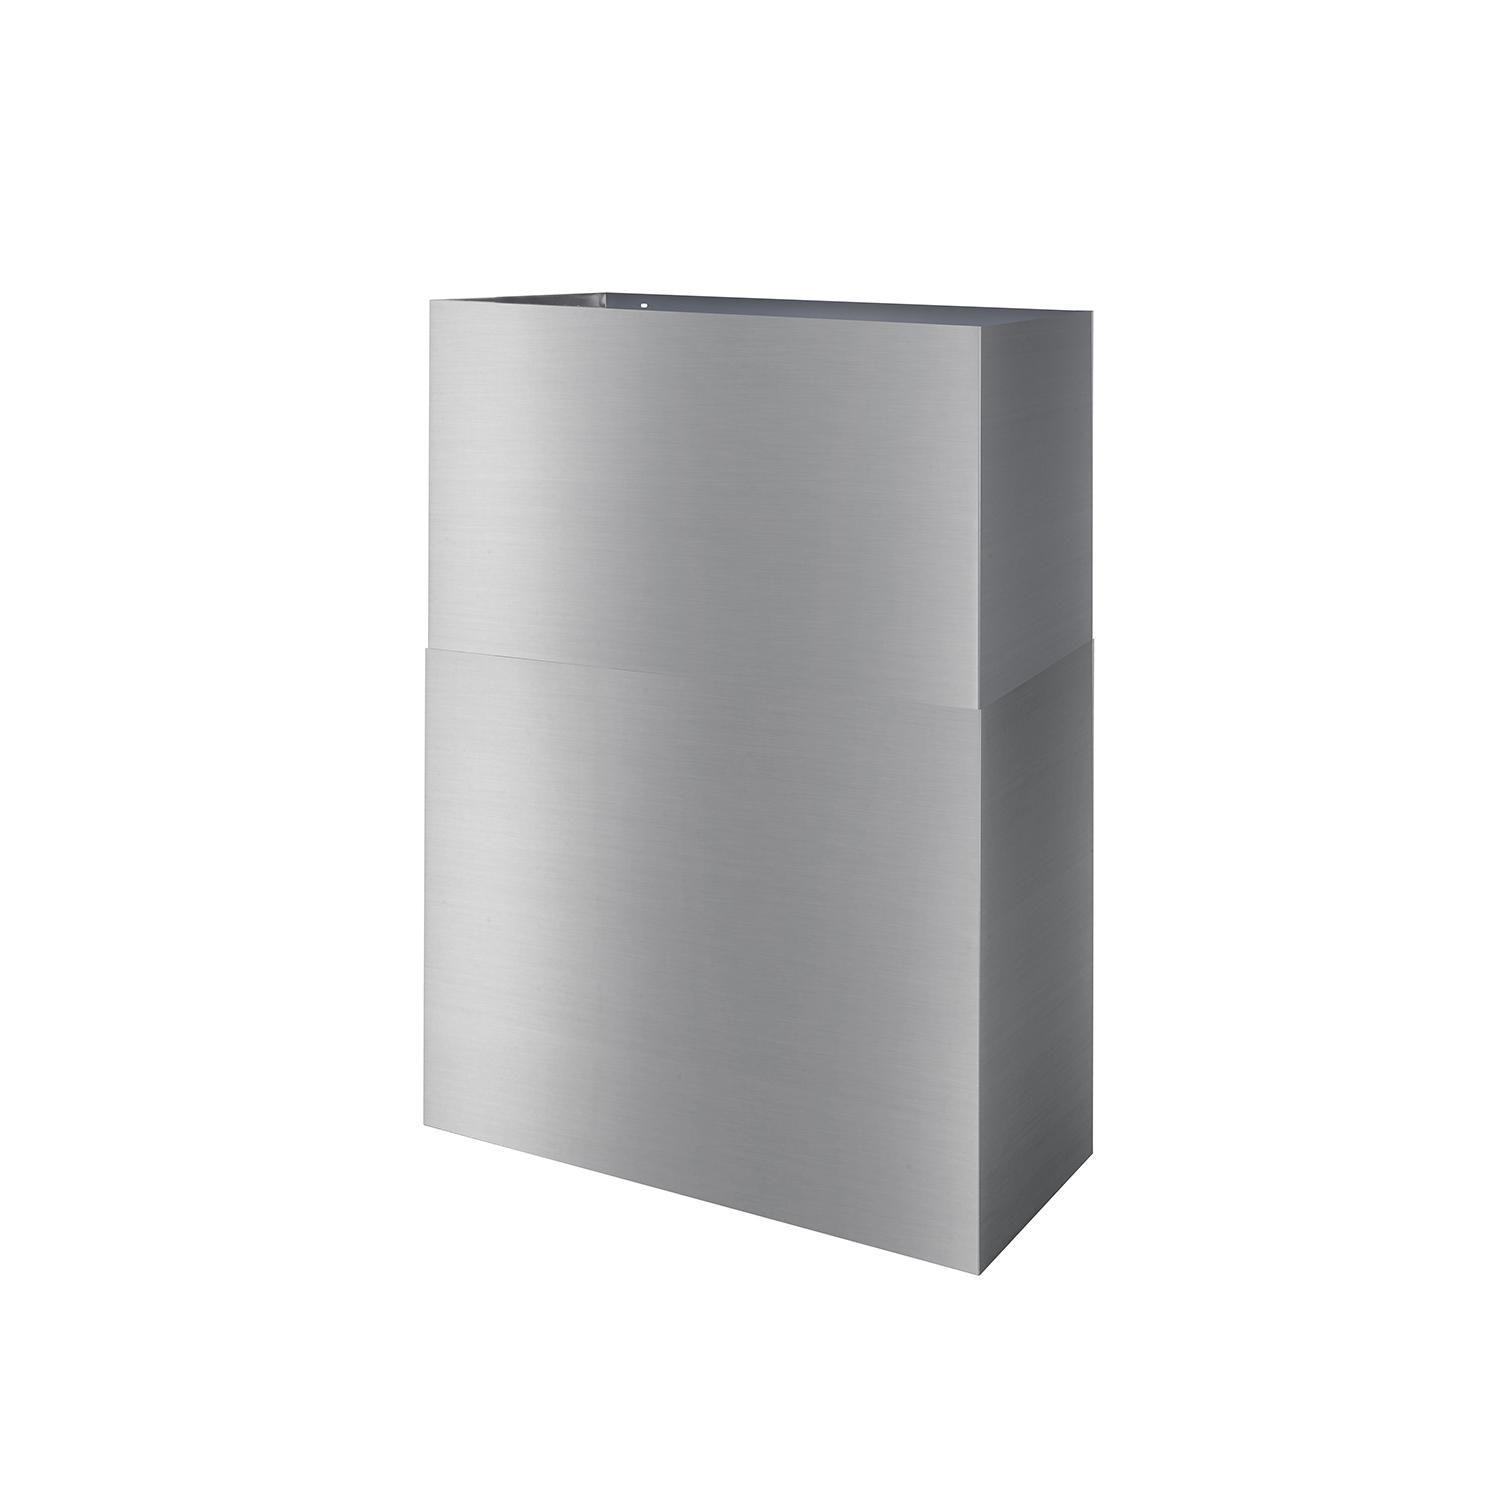 Thor Kitchen30 Inch Duct Cover For Range Hood In Stainless Steel